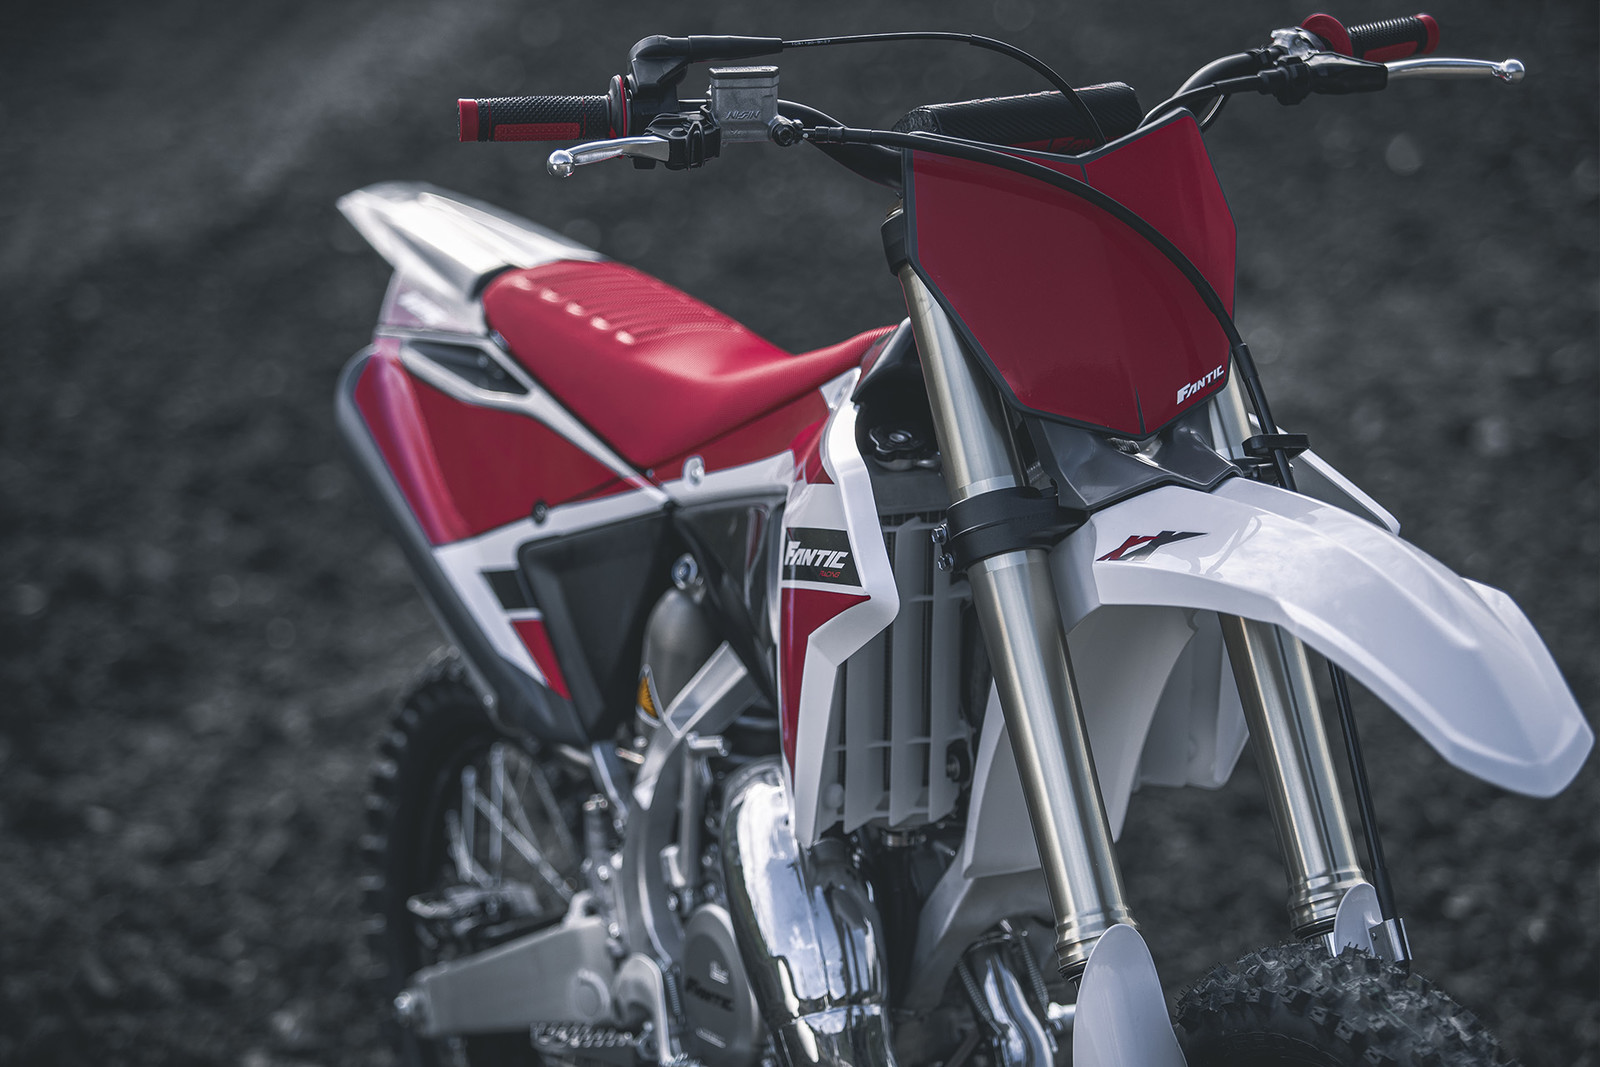 Knowing not to mess with a winning combination, the YZ chassis and suspension seems to be left alone on the XX 125.